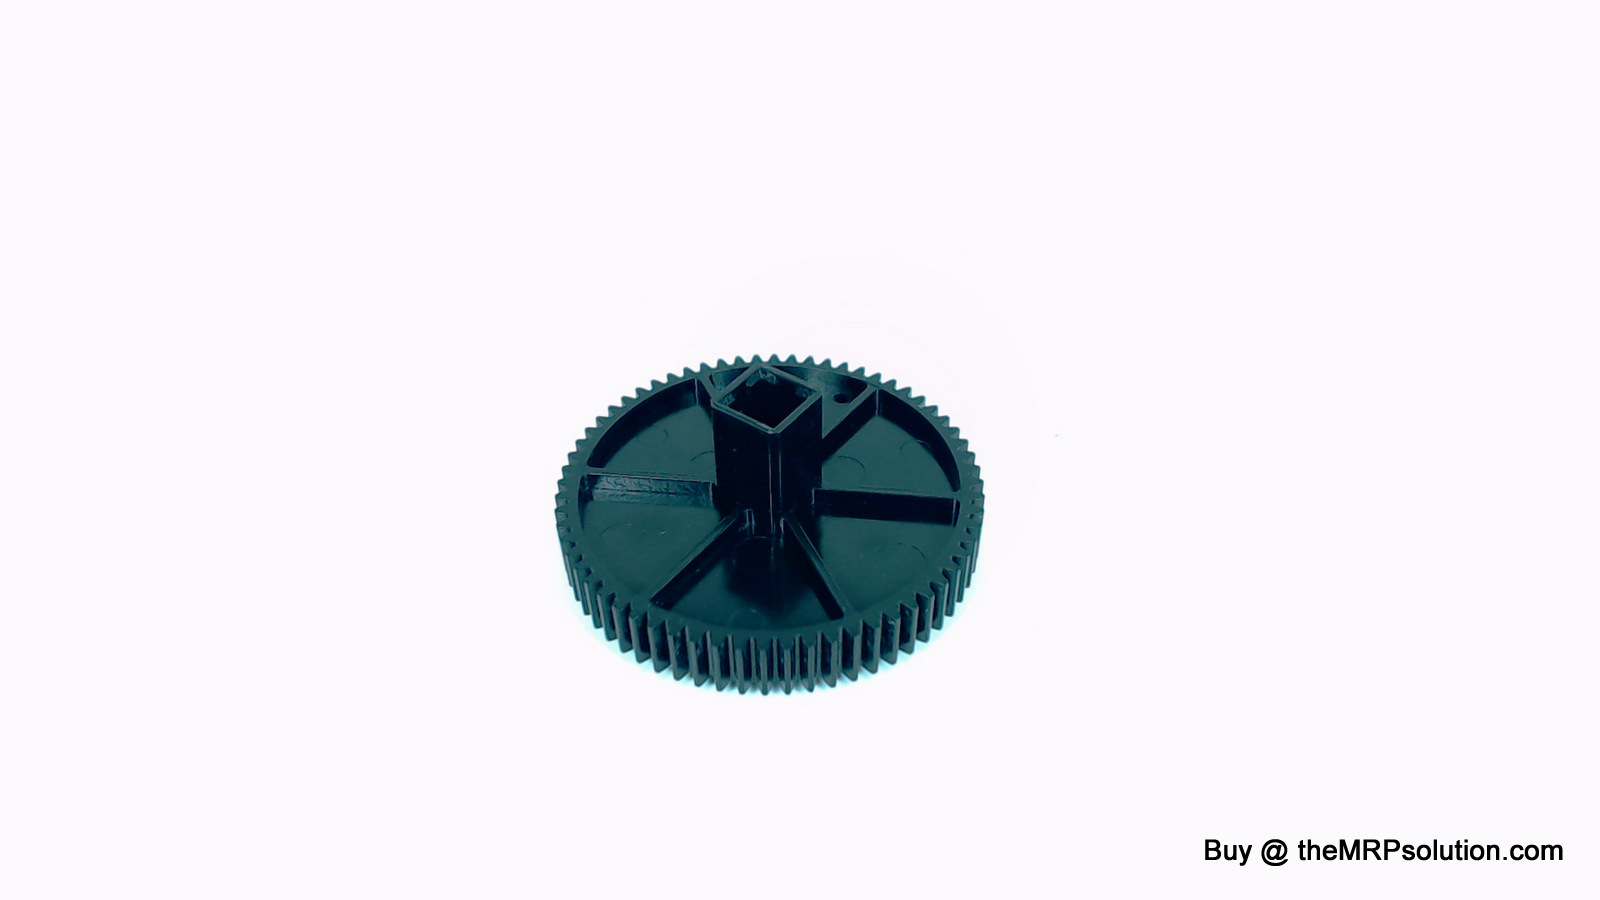 OKIDATA 51214201 DRIVE GEAR A, 395 Refurbished